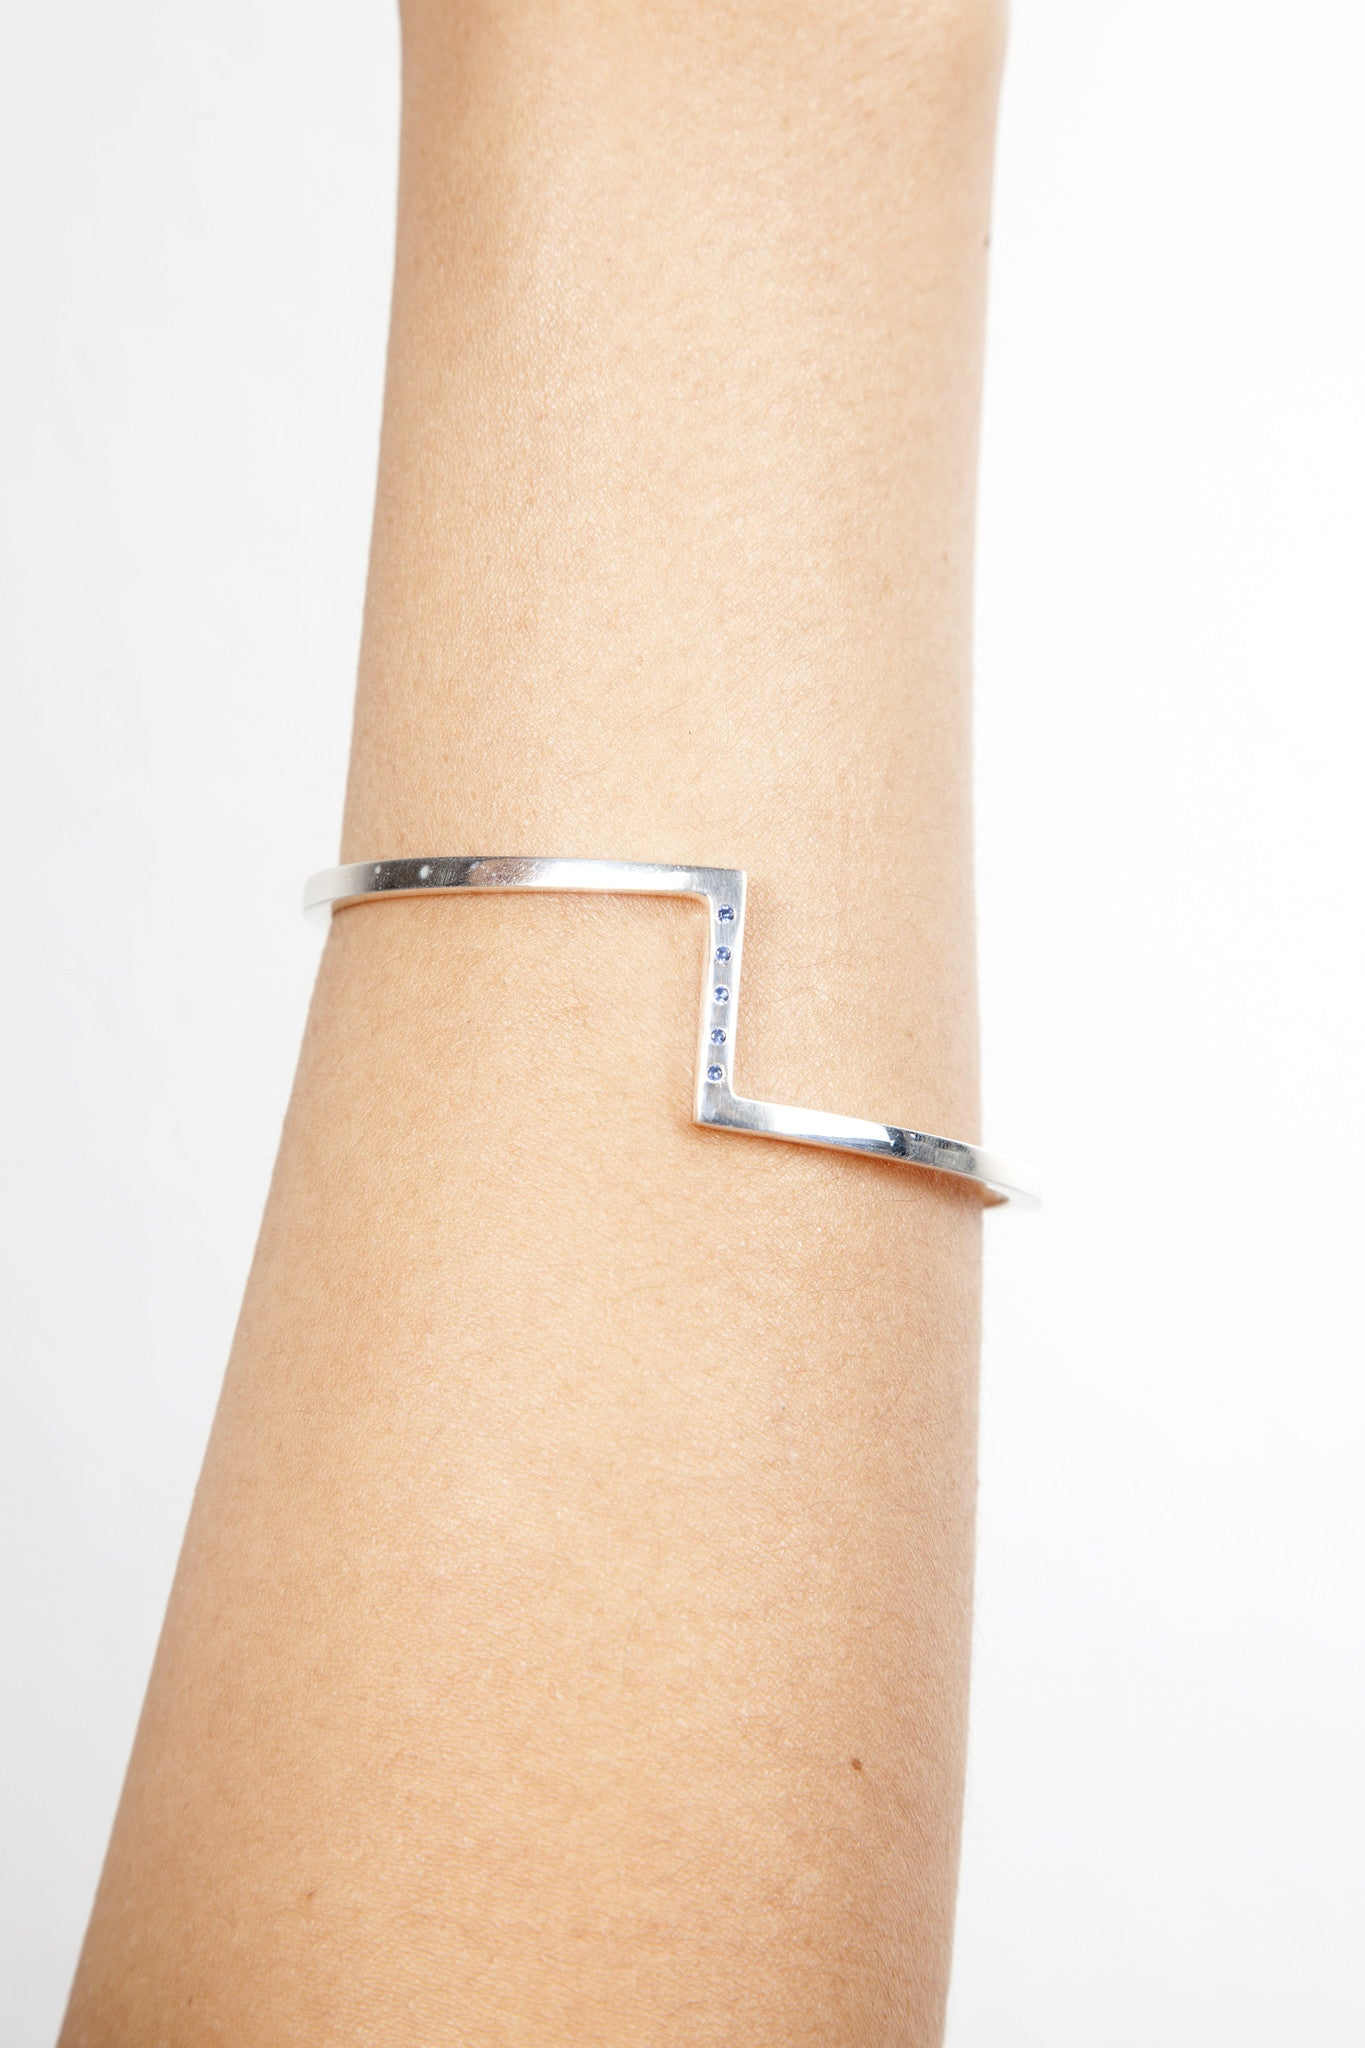 5TH FLOOR WALK UP BRACELET SILVER